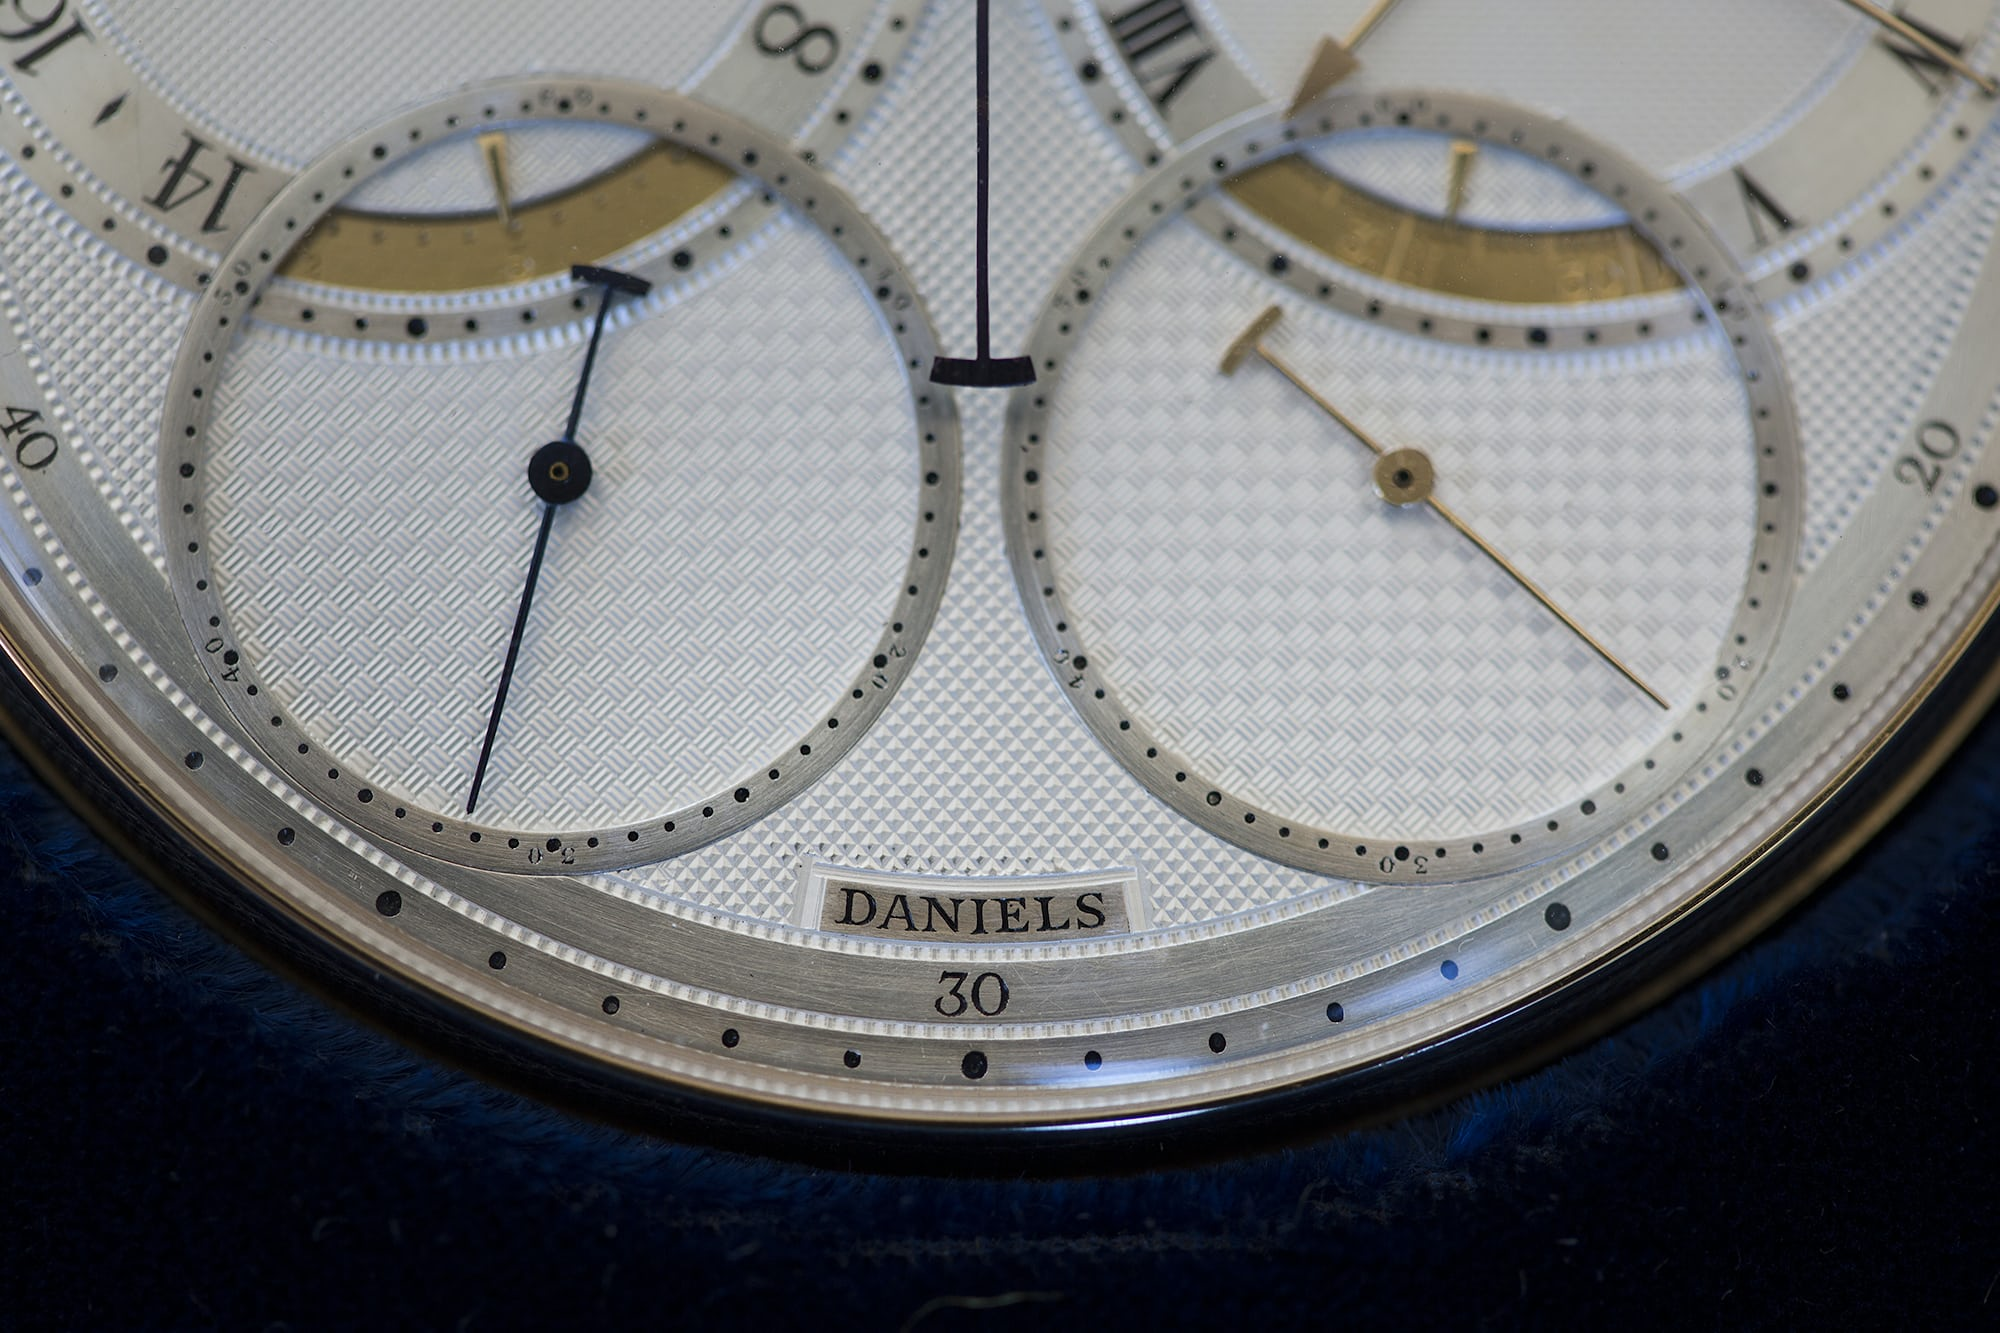 Daniels Space Traveller solar and sidereal seconds auction report: sotheby's to offer the daniels 'space traveller' watch, september 19th in london Auction Report: Sotheby's To Offer The Daniels 'Space Traveller' Watch, September 19th In London 20010458 copy